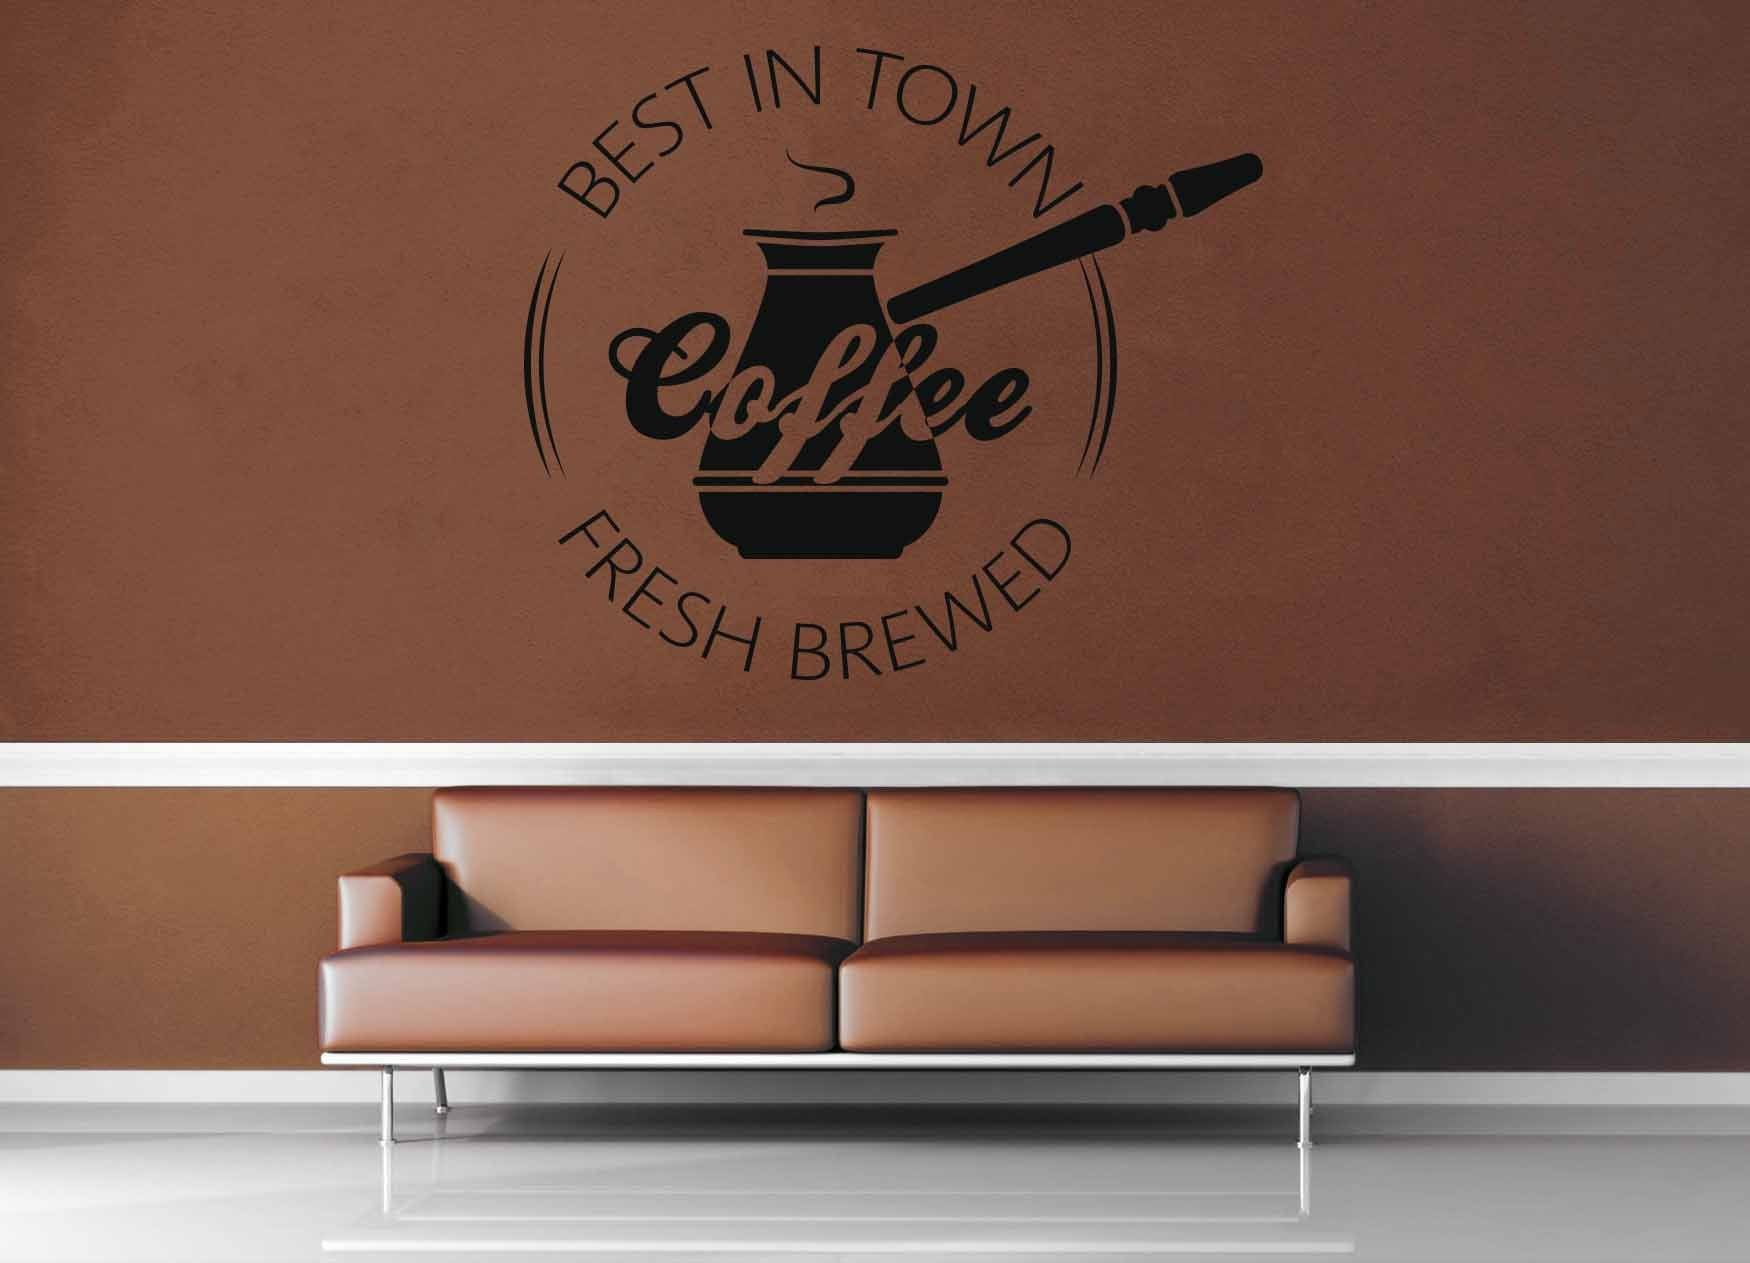 Best Flavor - Vintage Café Sign - Wall Decal - No 2